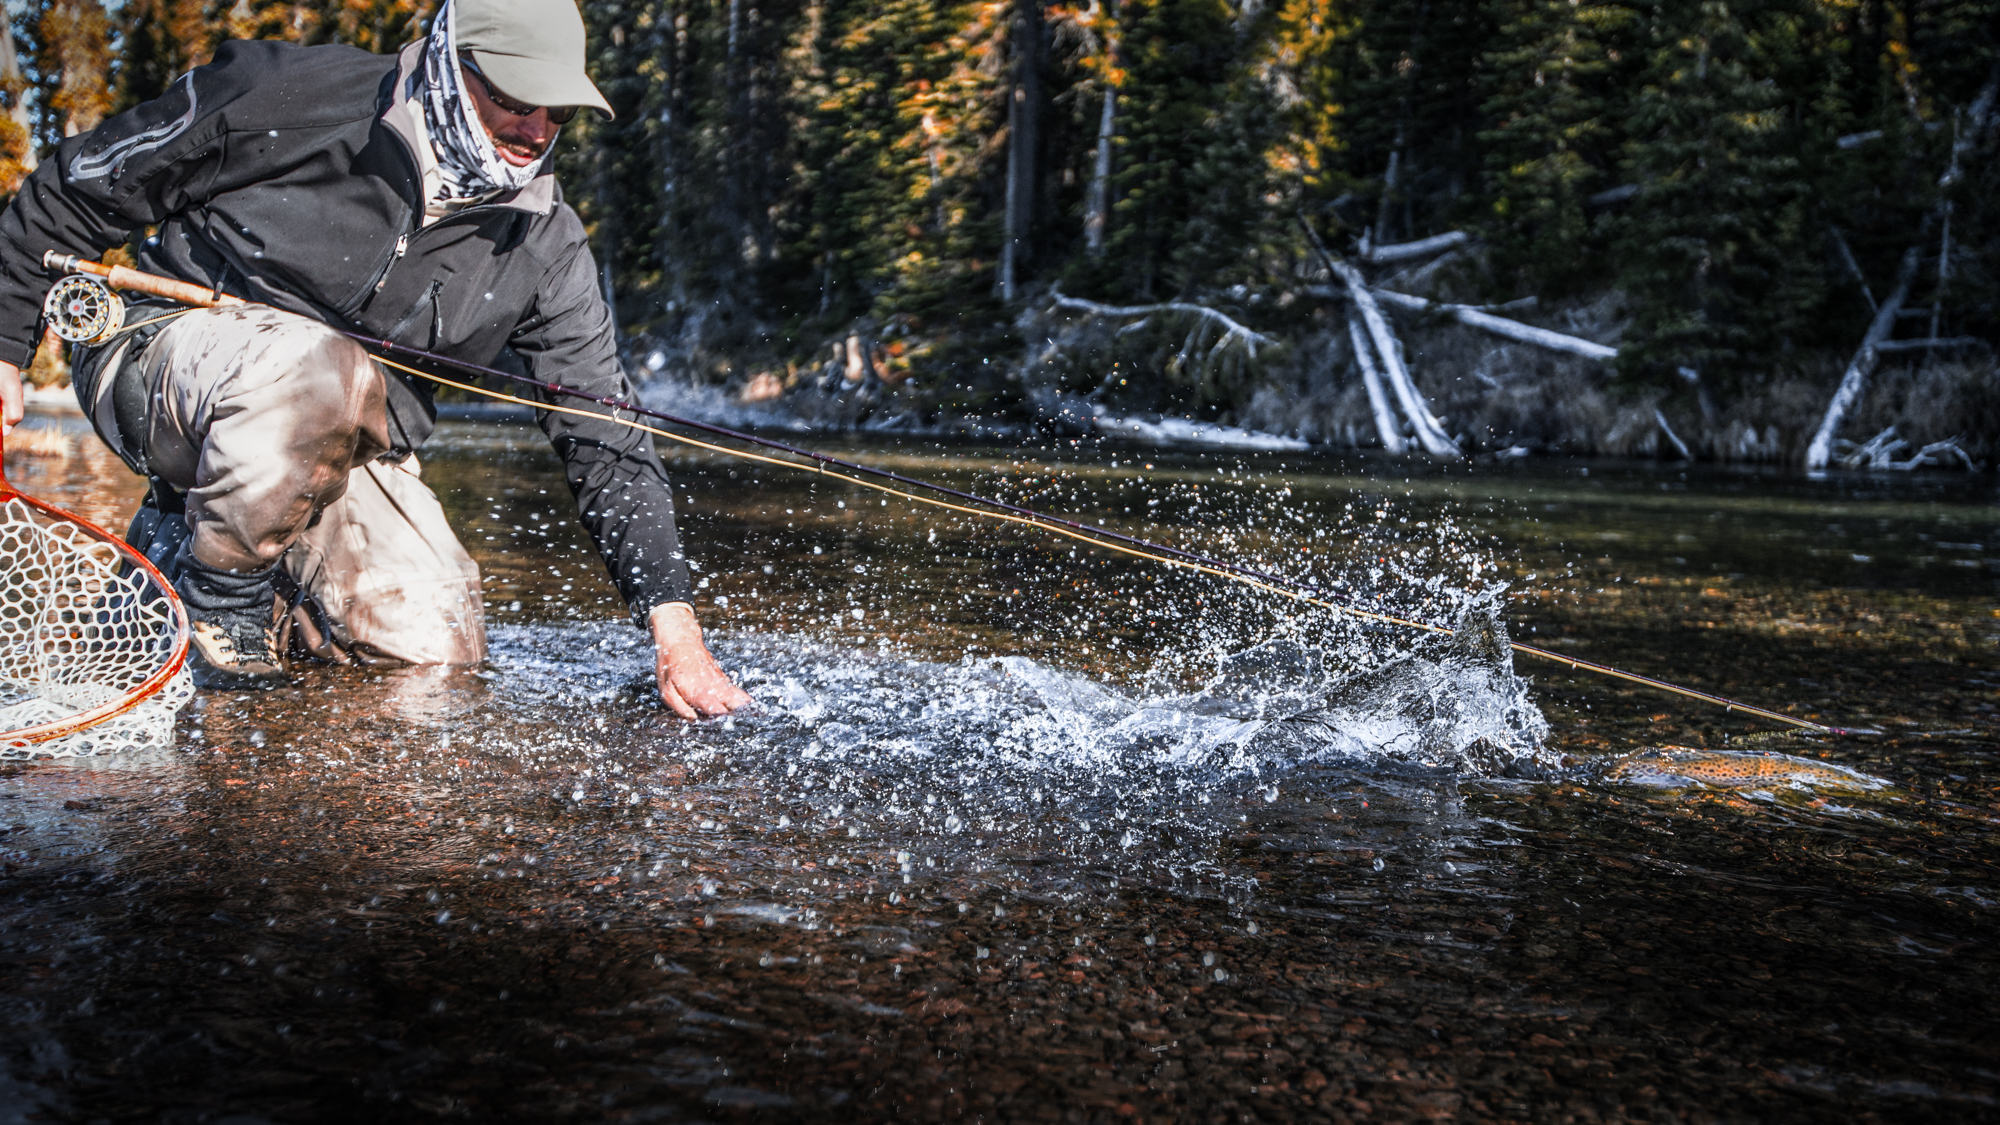 There's a certain sense of vitality that's particular to release shots, and this one -- of a trout fleeing with zeal after being unhooked -- illustrates thats sense perfectly.